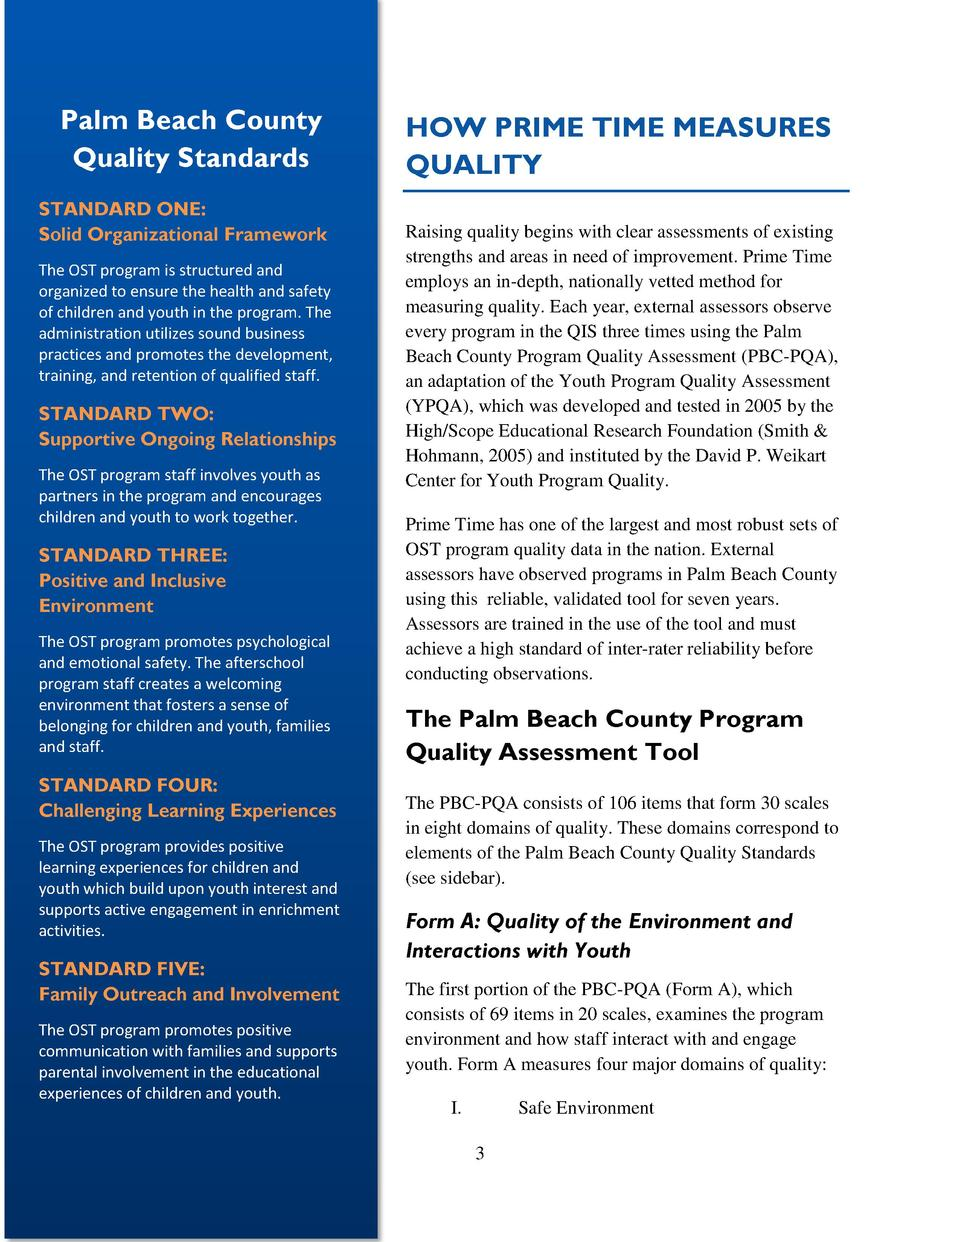 Palm Beach County Quality Standards STANDARD ONE  Solid Organizational Framework The OST program is structured and organiz...